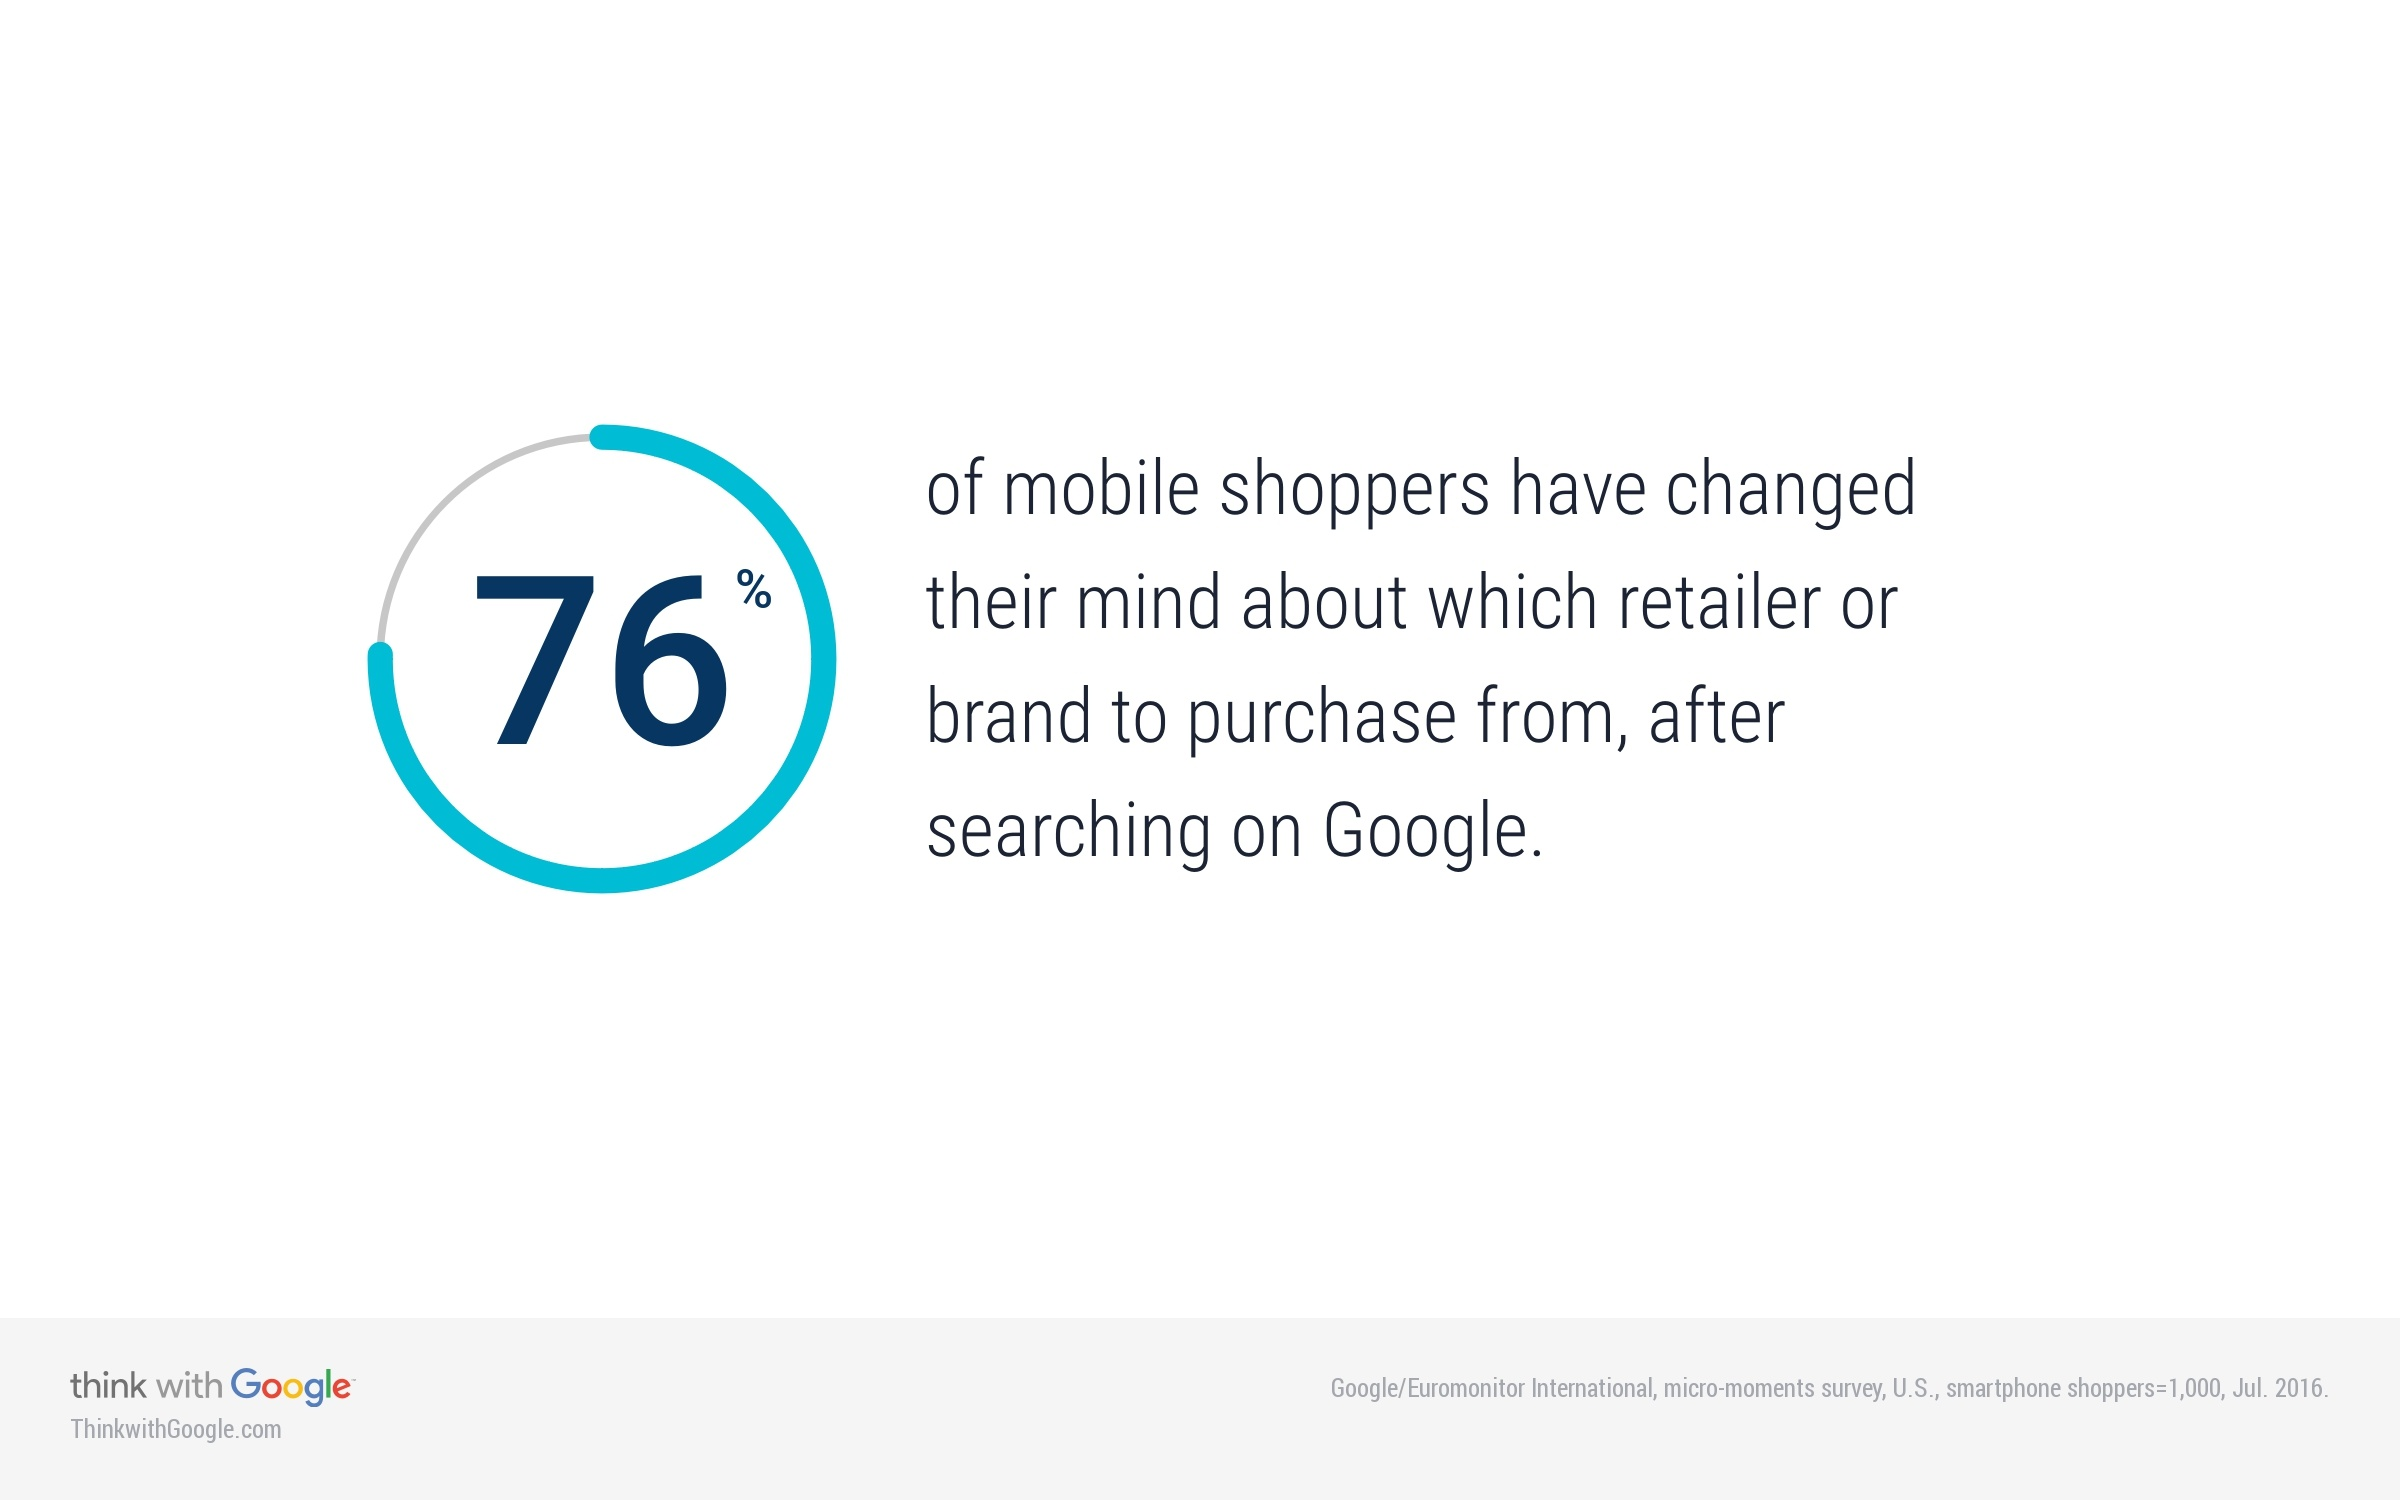 mobile-shoppers-changing-minds.jpg